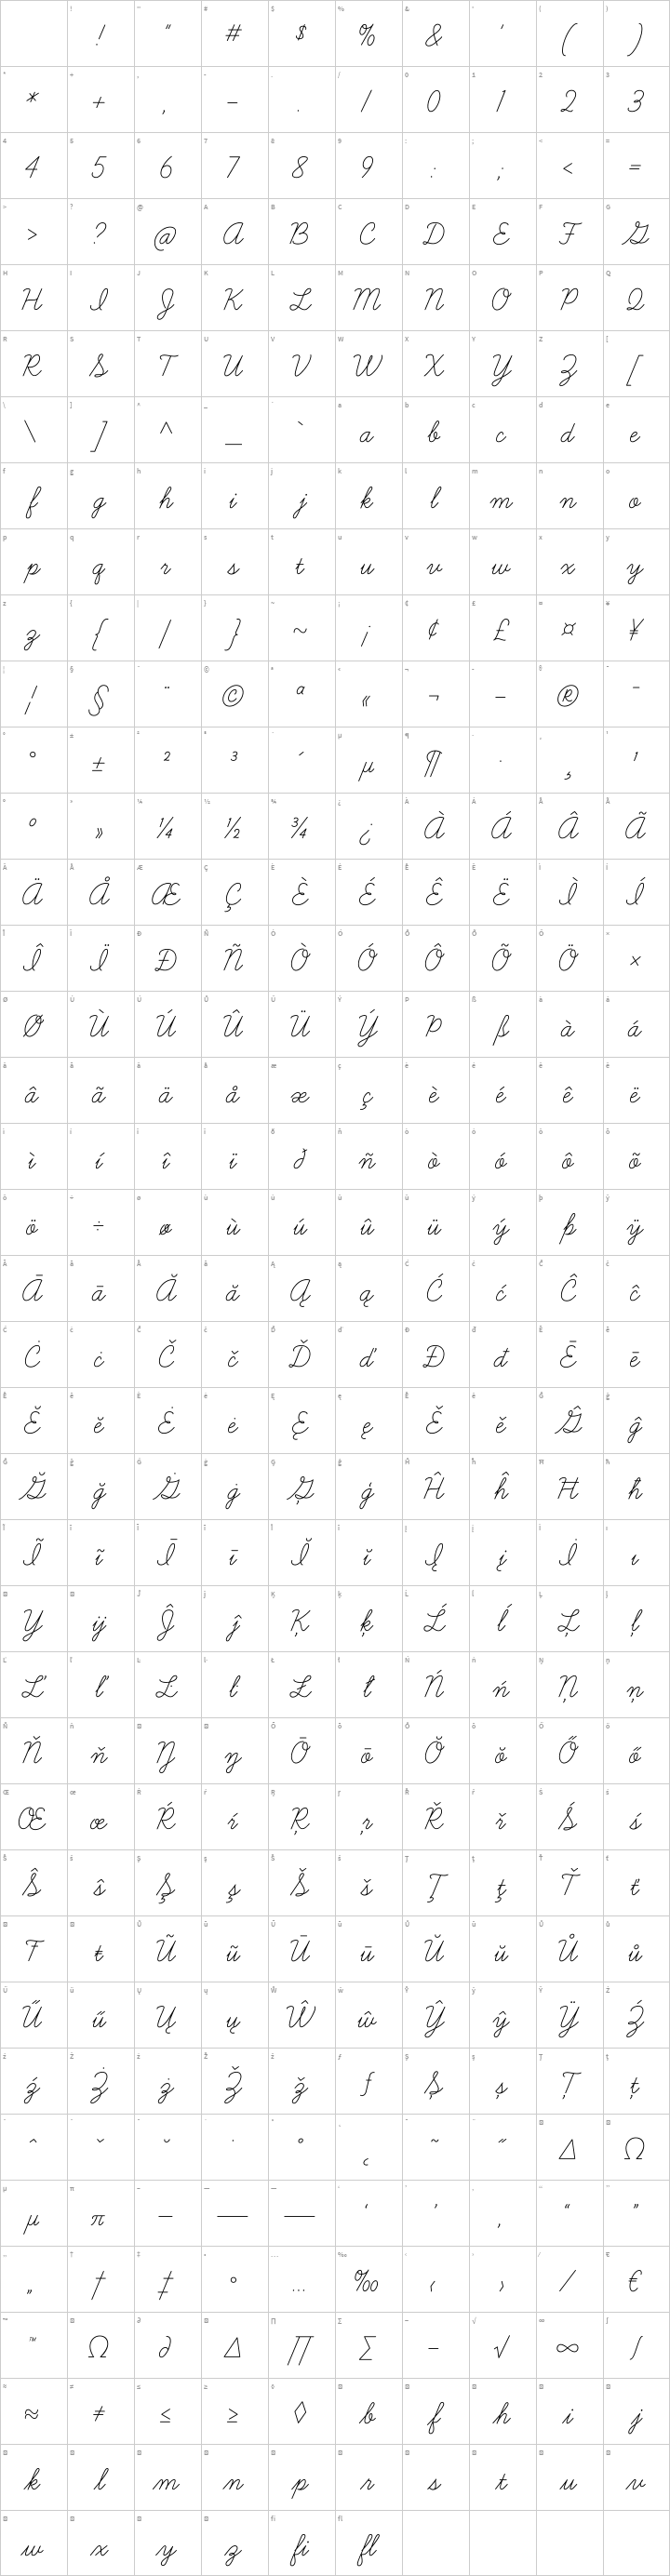 Learning Curve Pro Font Free by Blue Vinyl Fonts » Font Squirrel